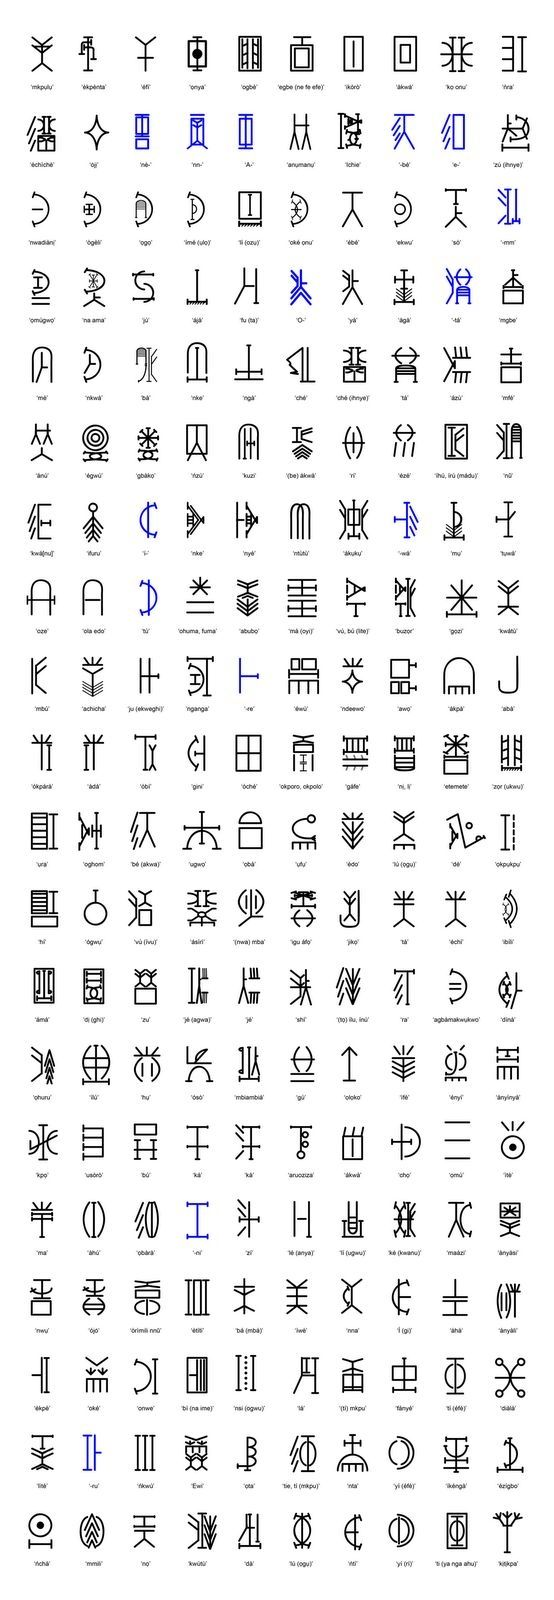 Symbols and their meanings egyptian symbols and their meanings symbols and their meanings egyptian symbols and their meanings nsibidi writing system by catalina more buycottarizona